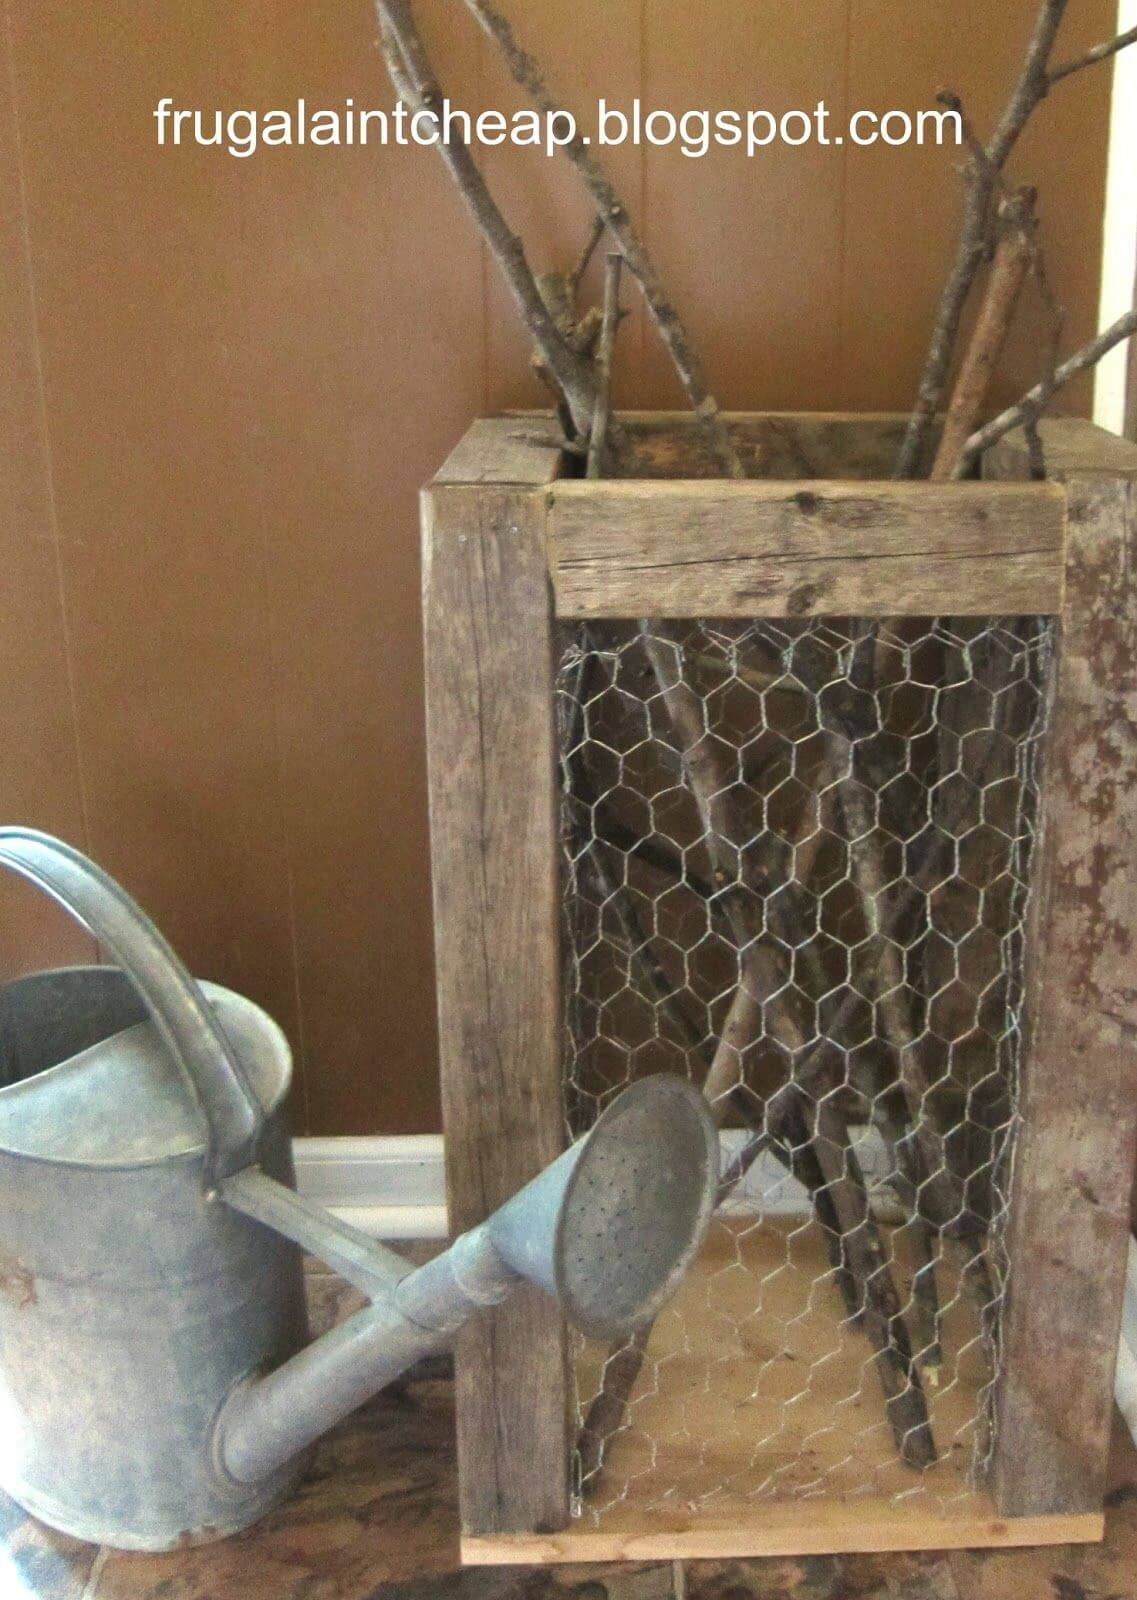 Use Chicken Wire for a Firewood Holder